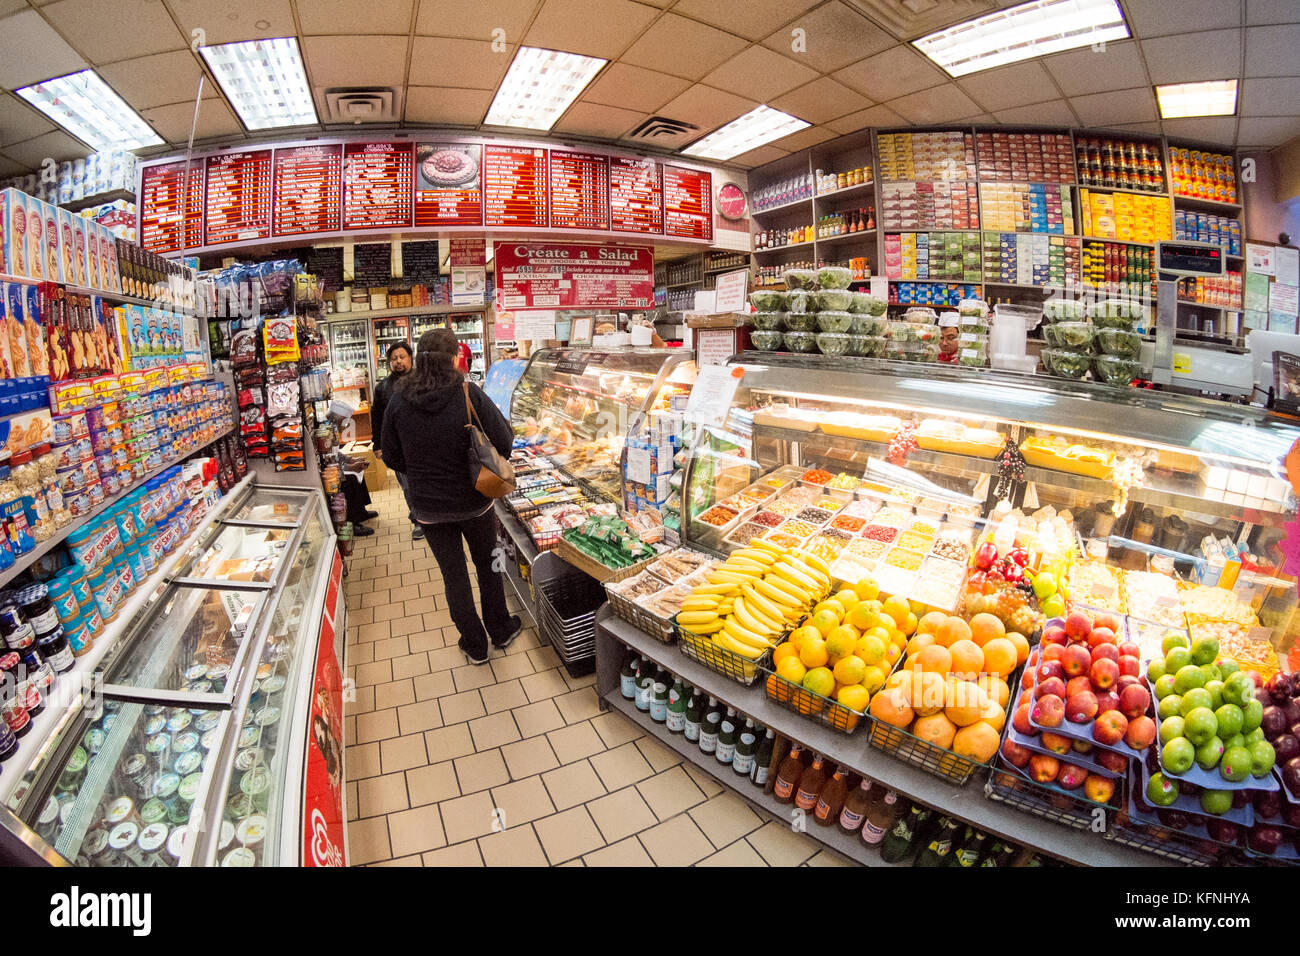 Melissa's gourmet deli 62 W 62nd St, New York, United states of America. - Stock Image